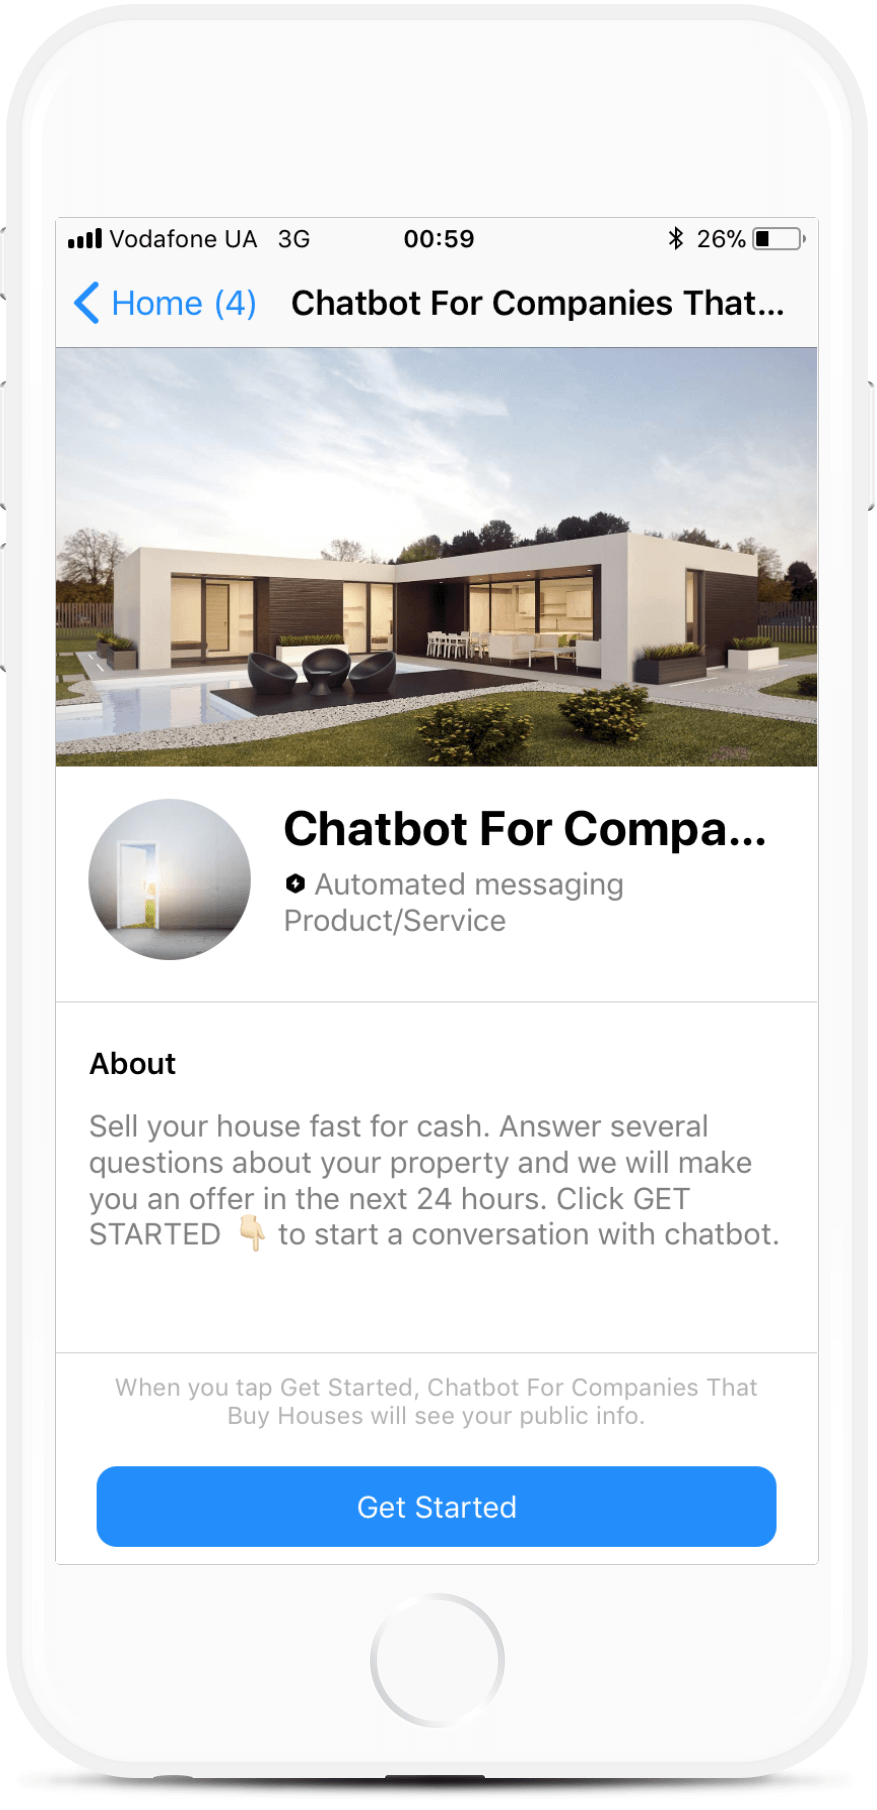 Chatbot For Companies That Buy Houses bot screenshot